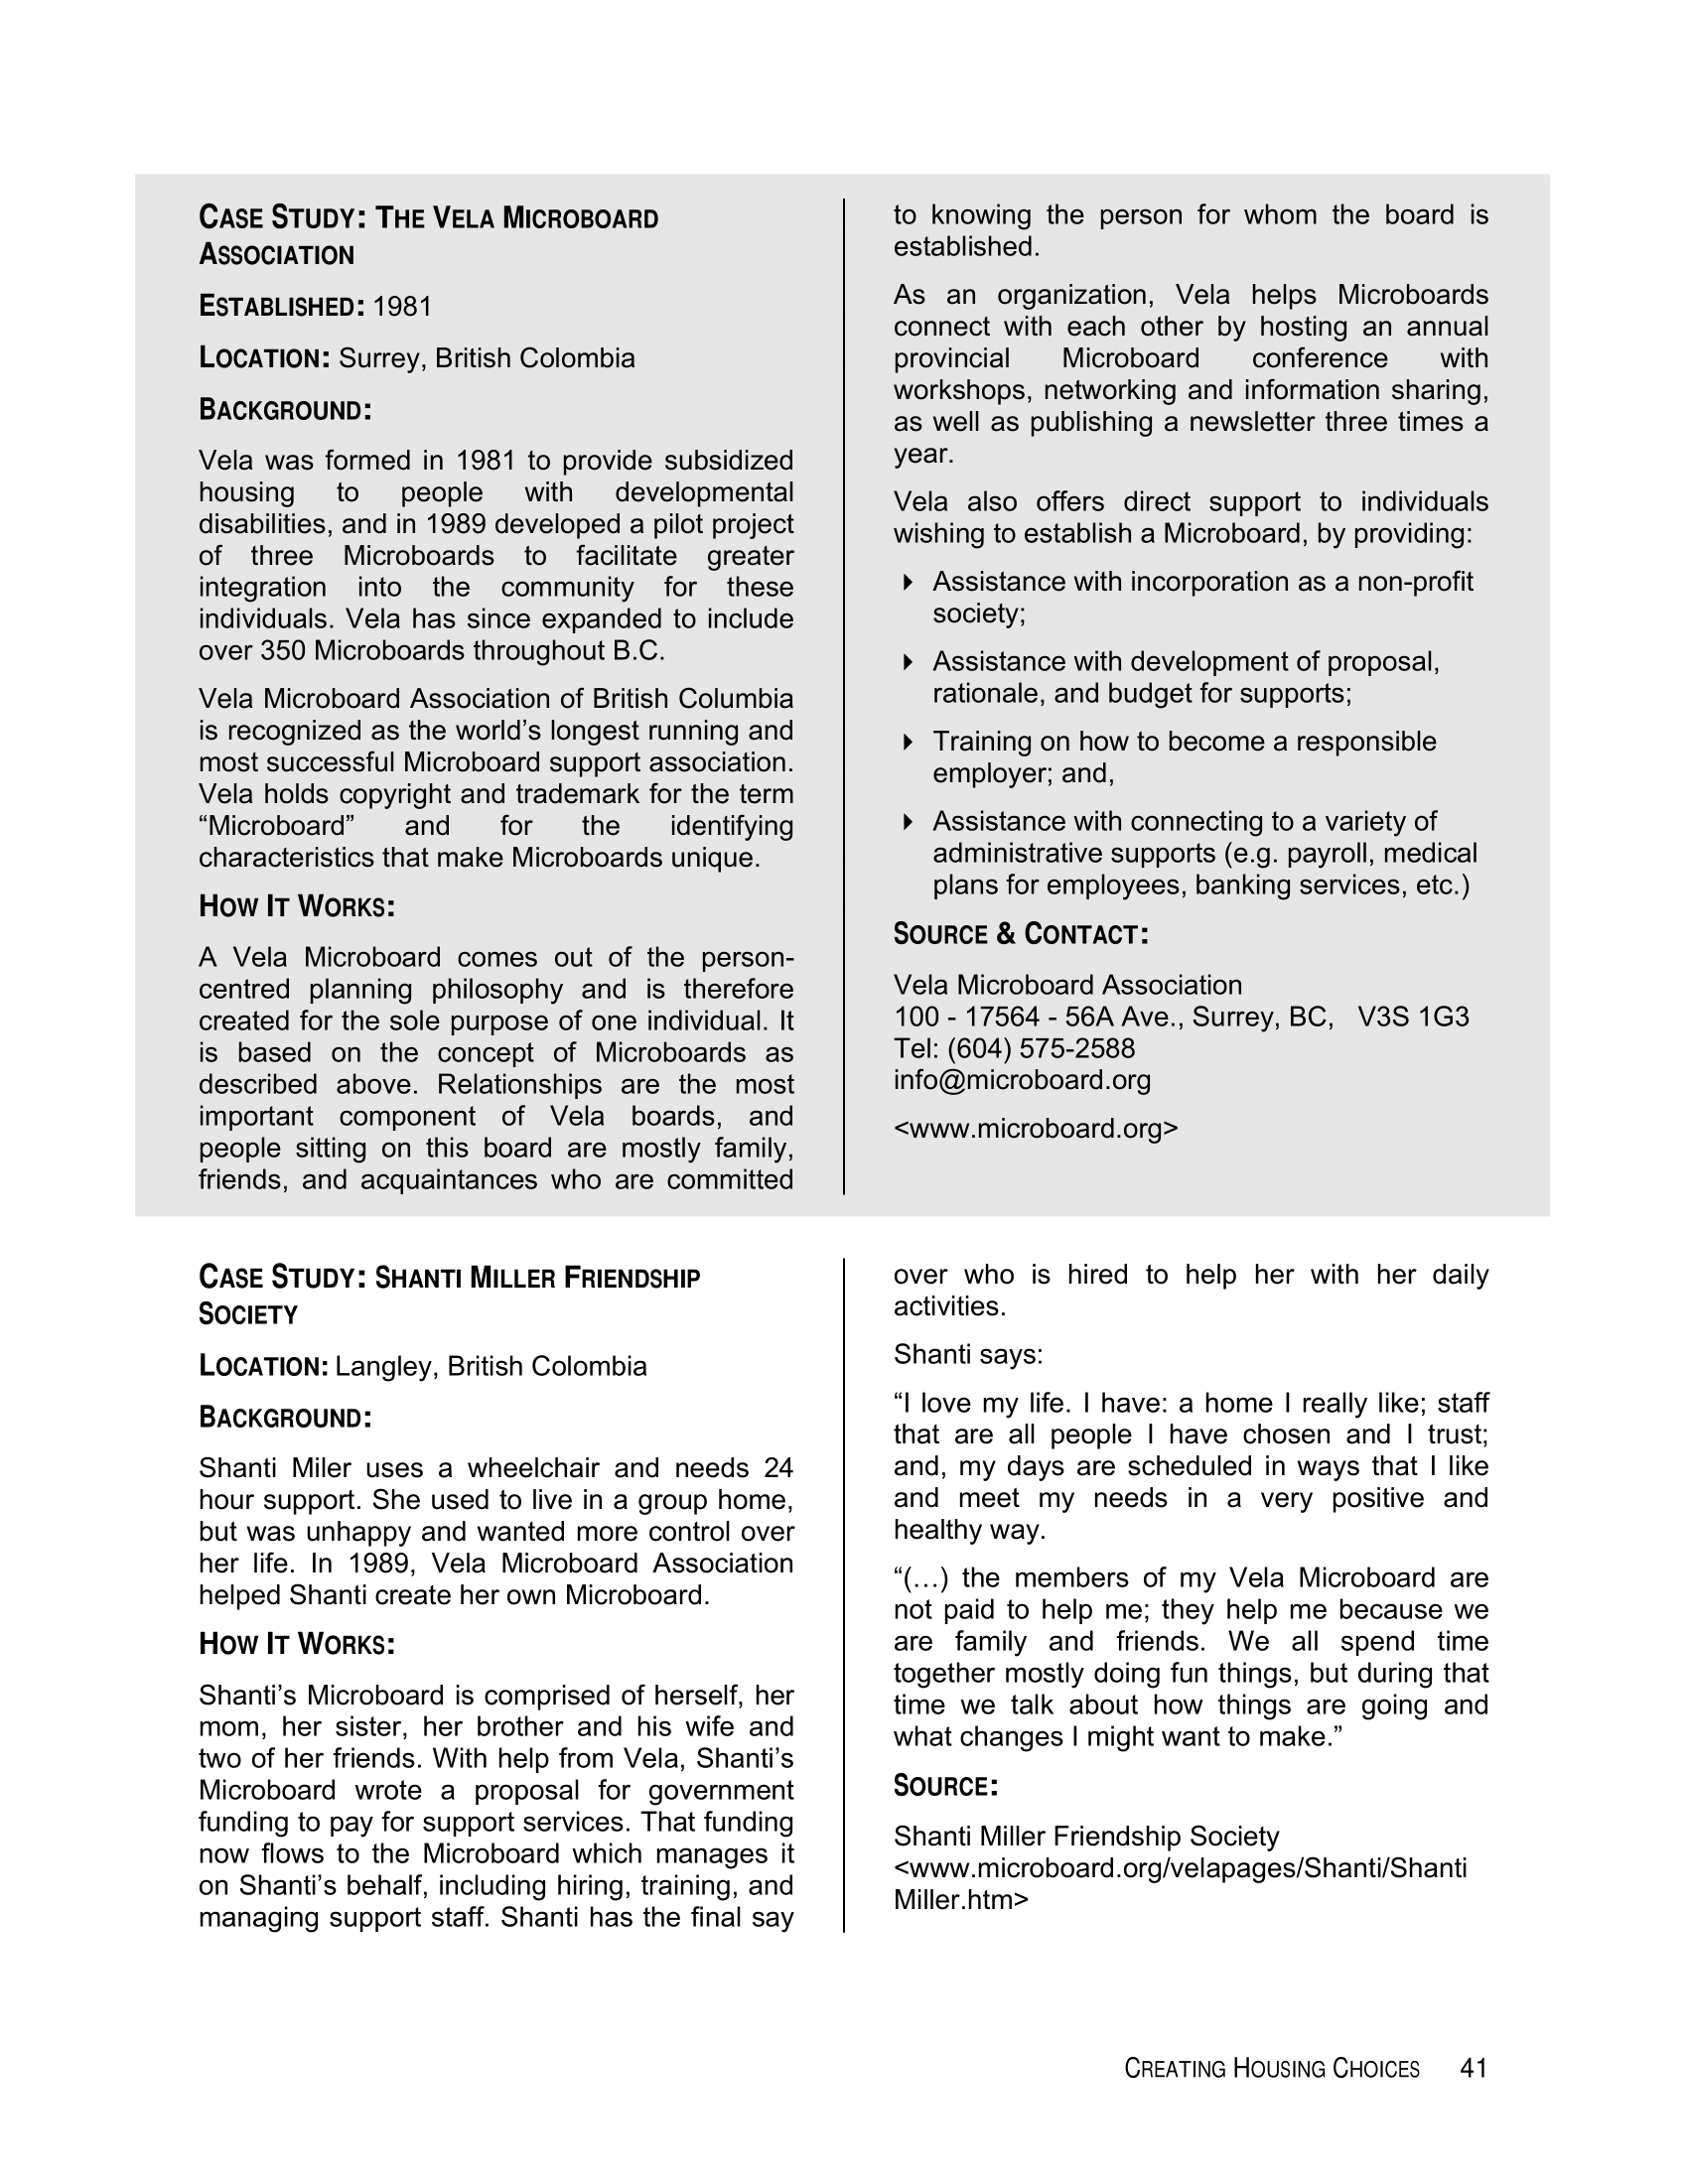 Creating Housing Choices - 2006-42.png